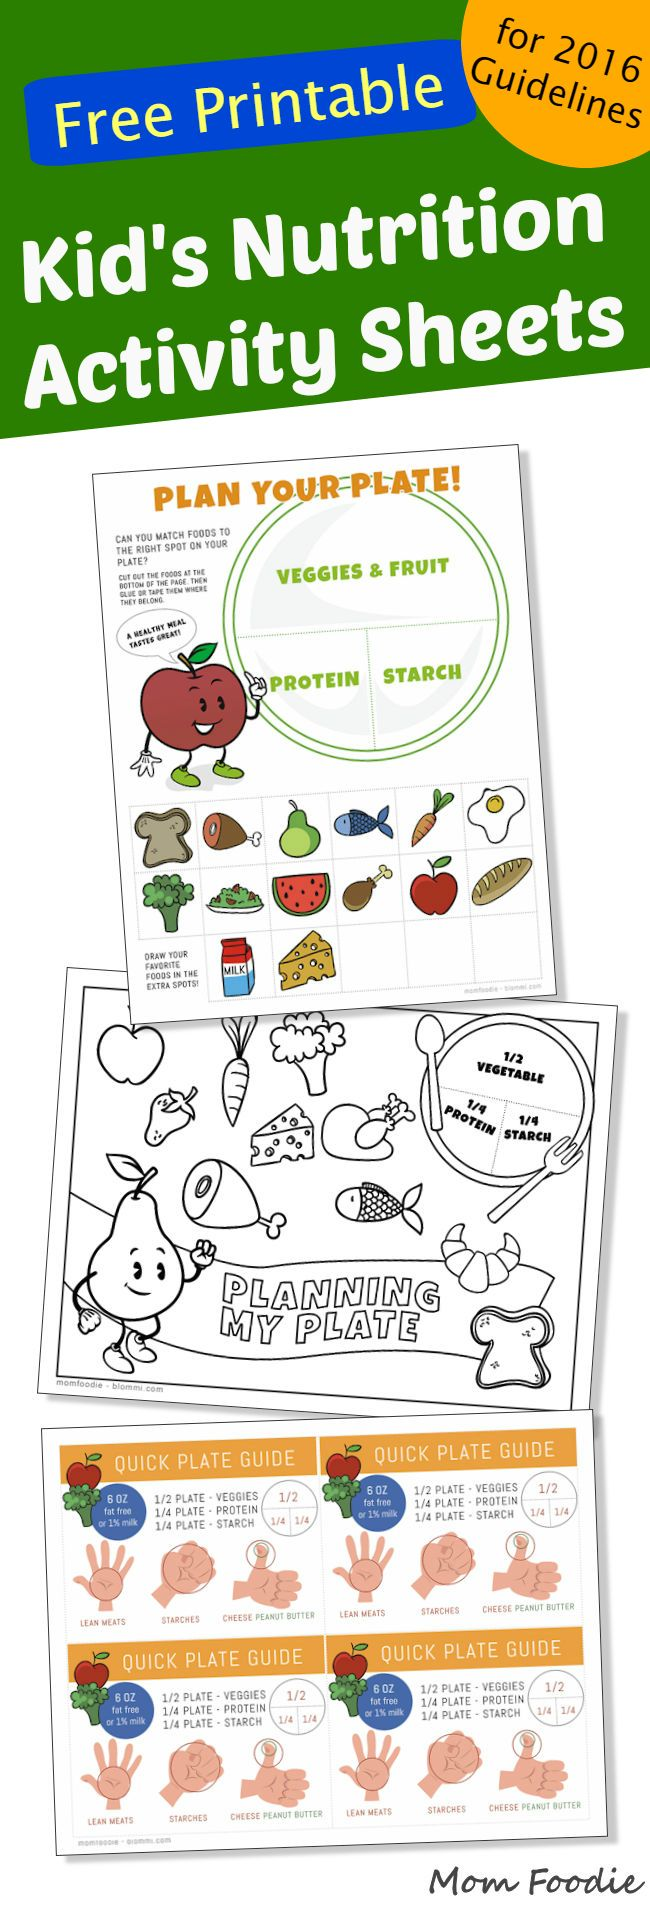 Free Printable Kids Nutrition Activity Sheets ~ based off My Plate guidelines. #HorizonRecipes AD